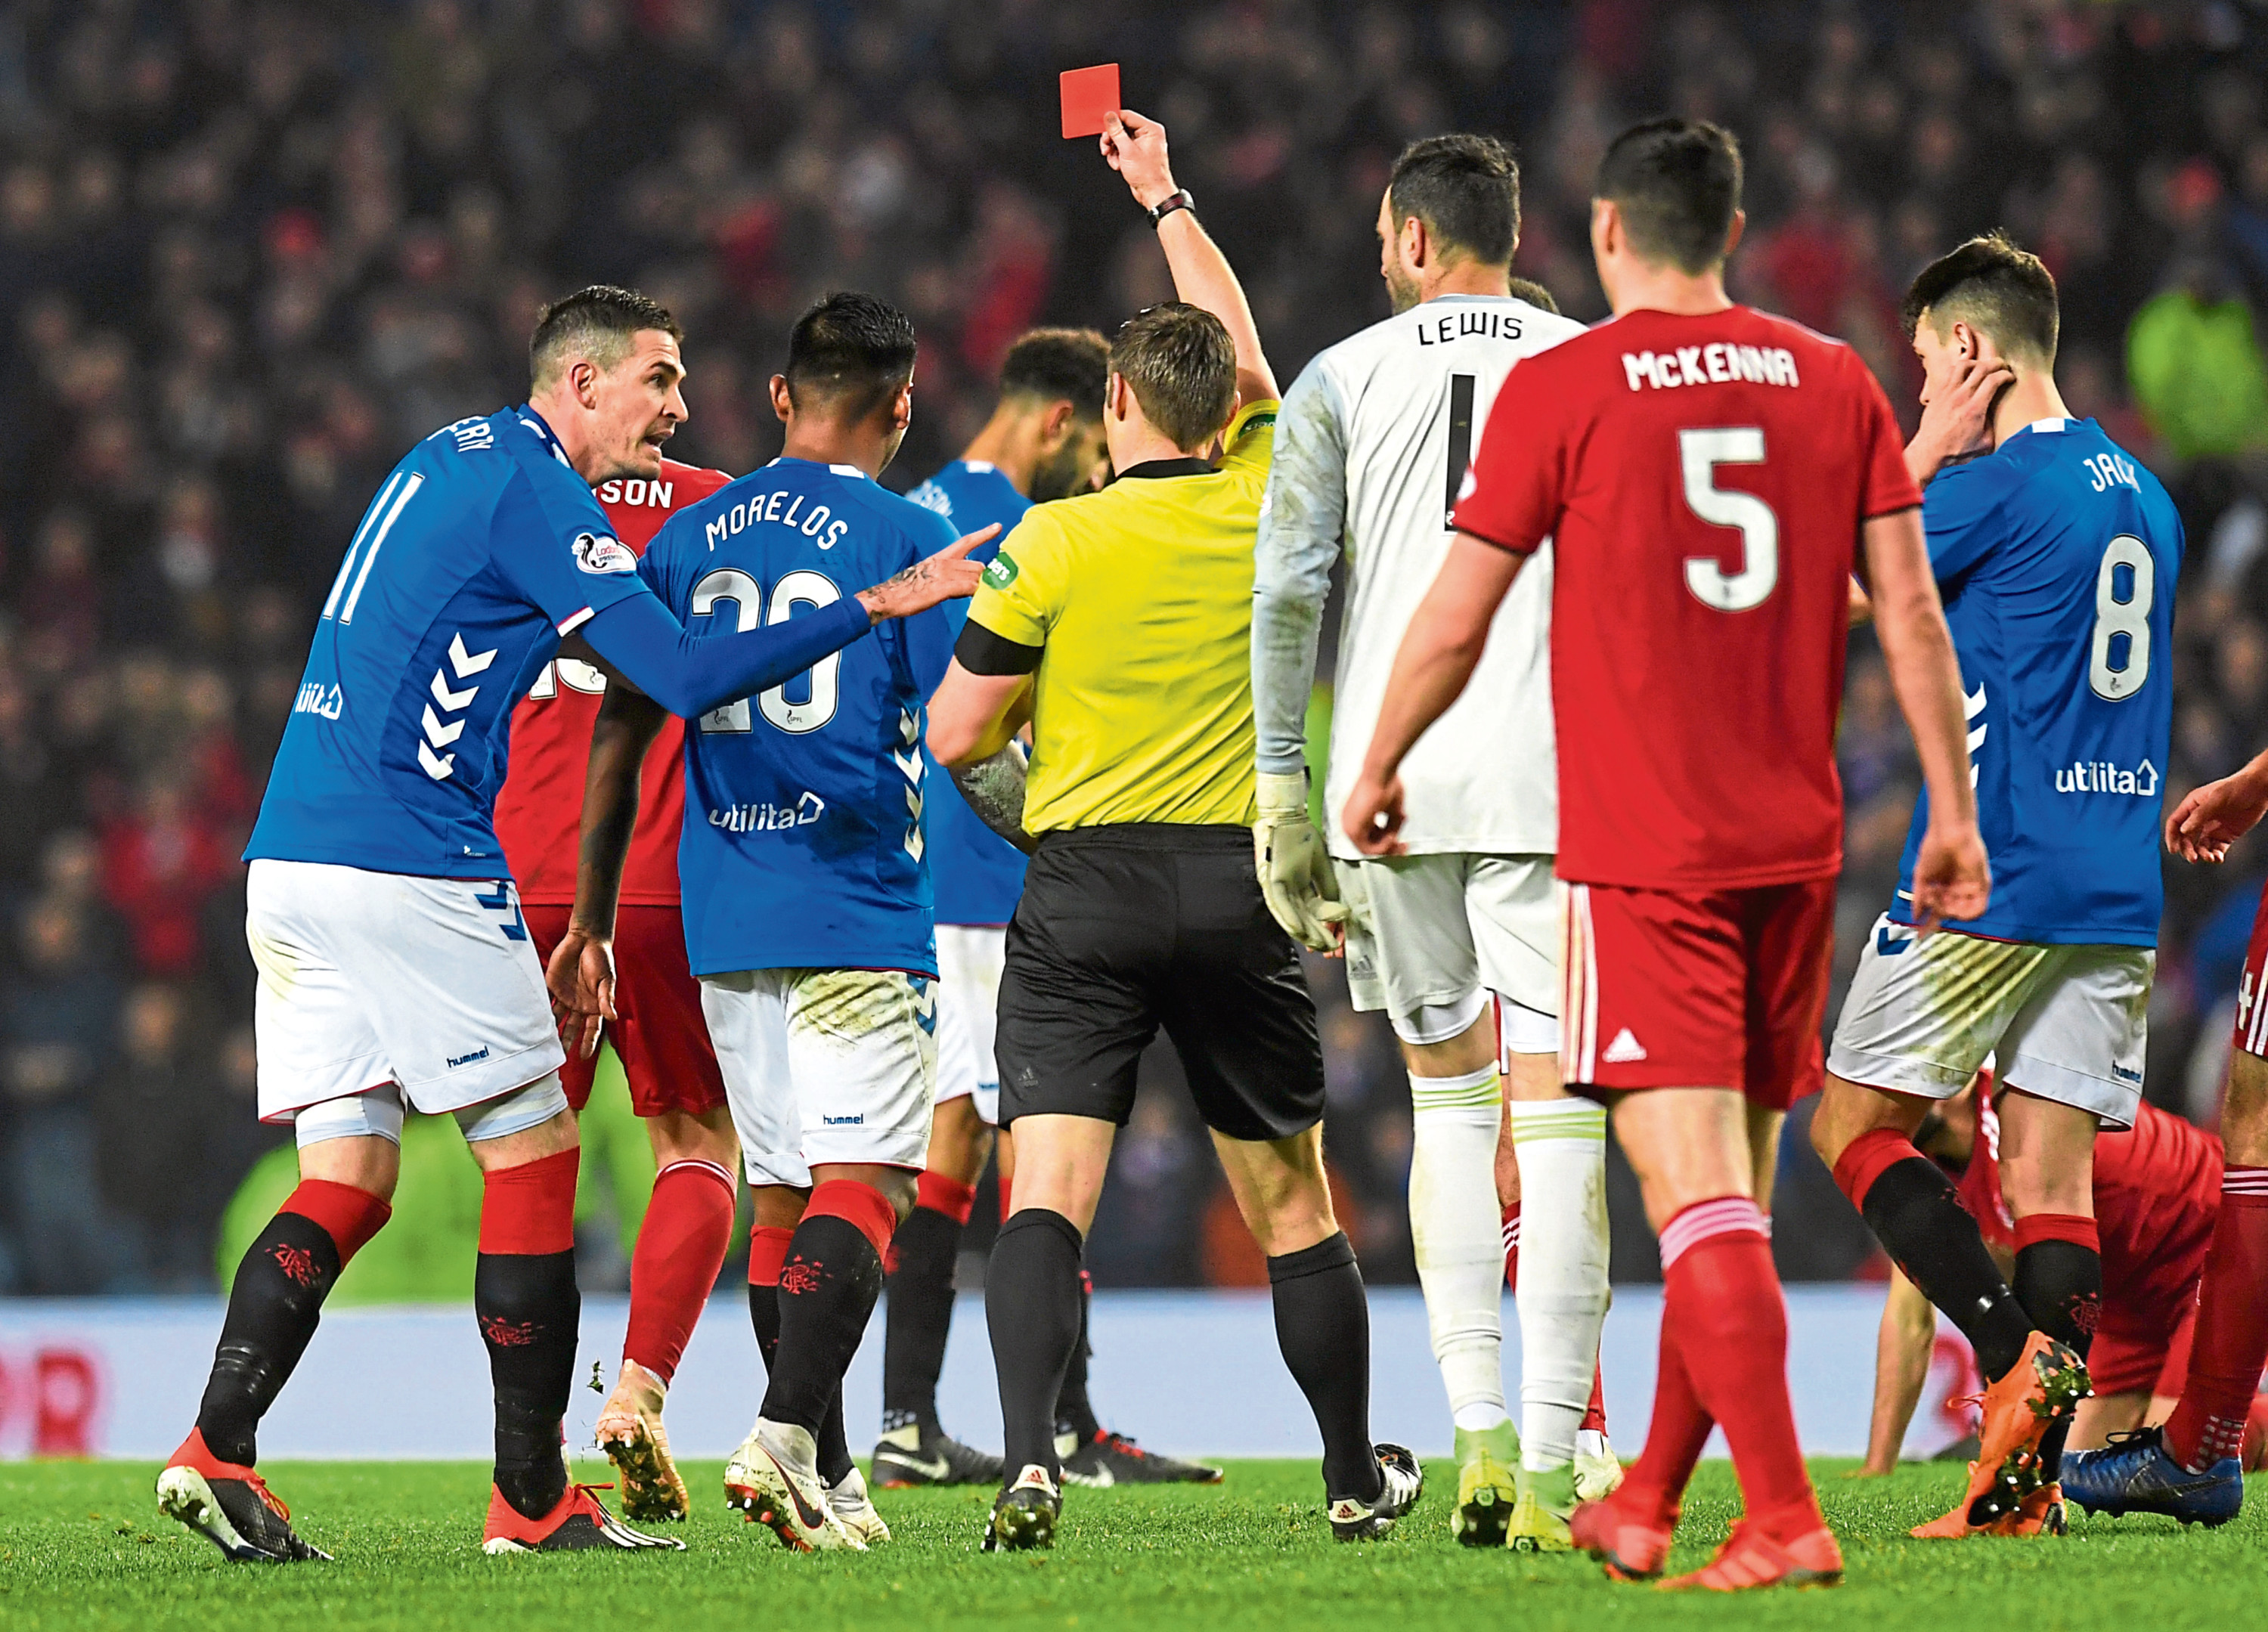 Rangers' Alfredo Morelos leaves the pitch after receiving a red card.